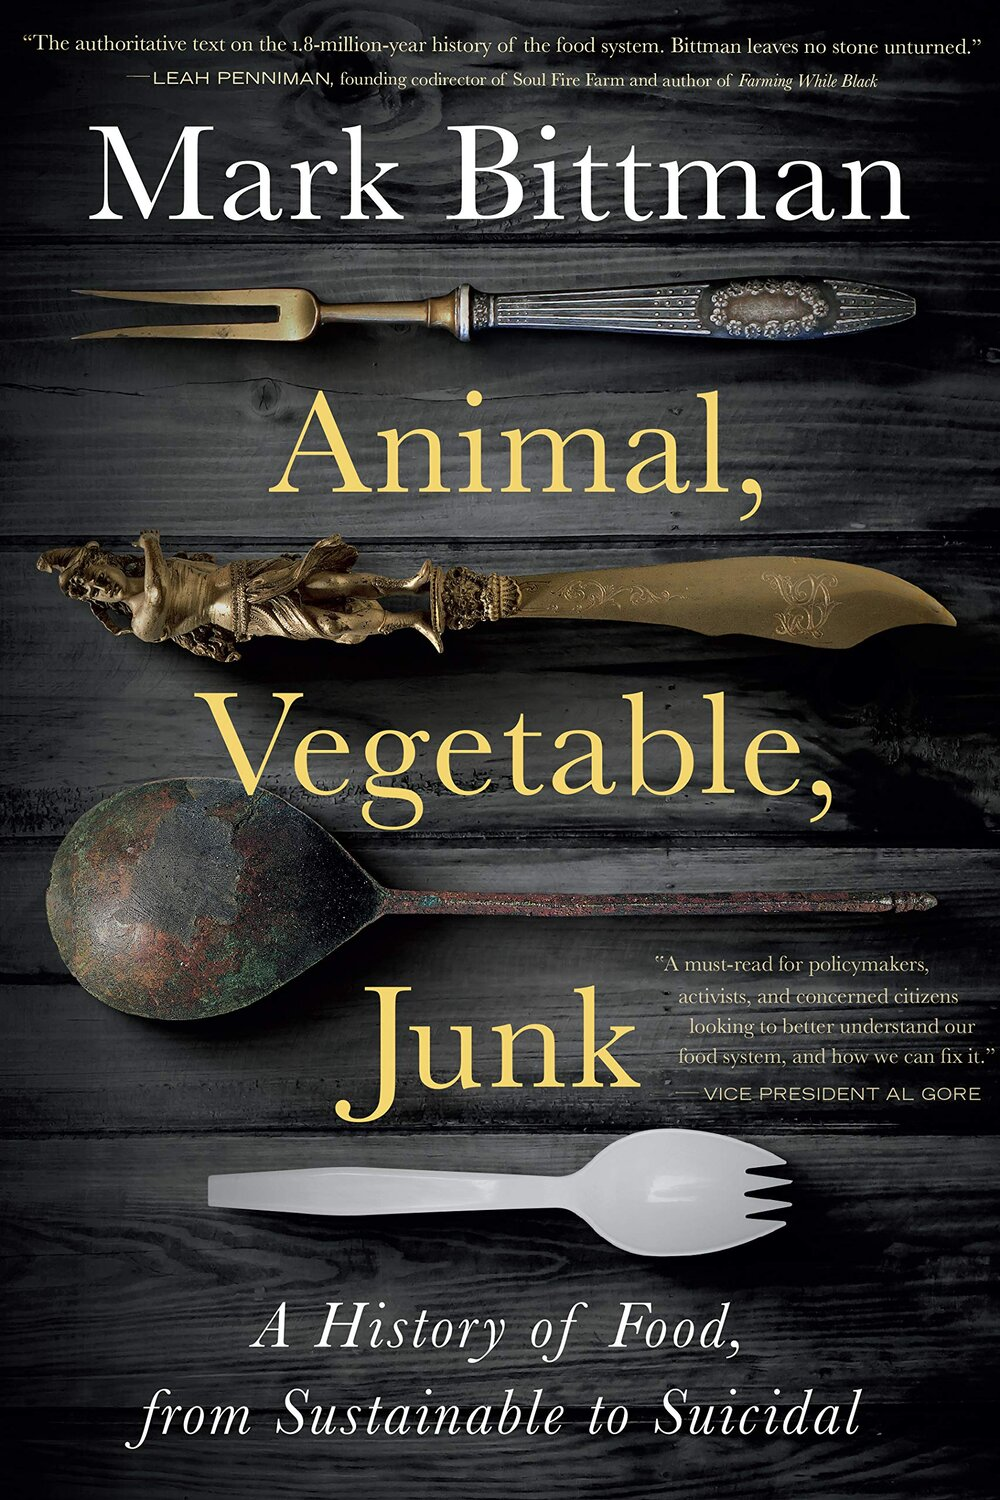 Animal, Vegetable, Junk: A History of Food, from Sustainable to Suicidal by Mark Bittman